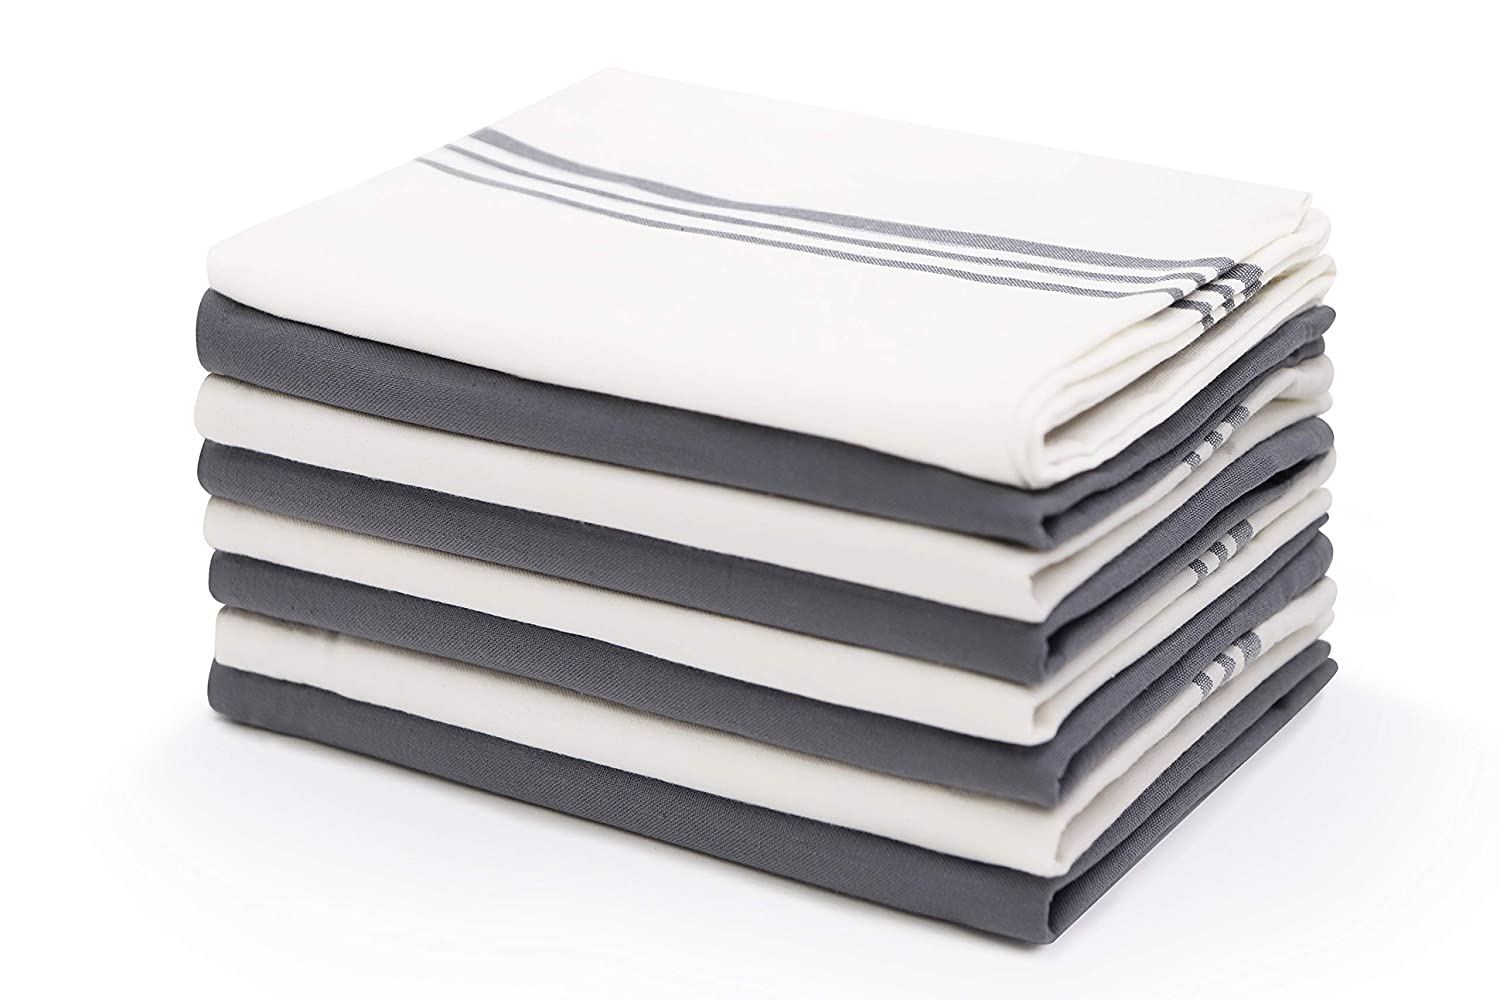 "Harringdons Kitchen Dish Towels Cotton Tea Towels with Pot Holder, 9 Piece Set. Gray and White 4 of Each in Plain Weave. Large, Absorbent Dish Cloths 28"" x 20"". There's no Substitute for Quality."